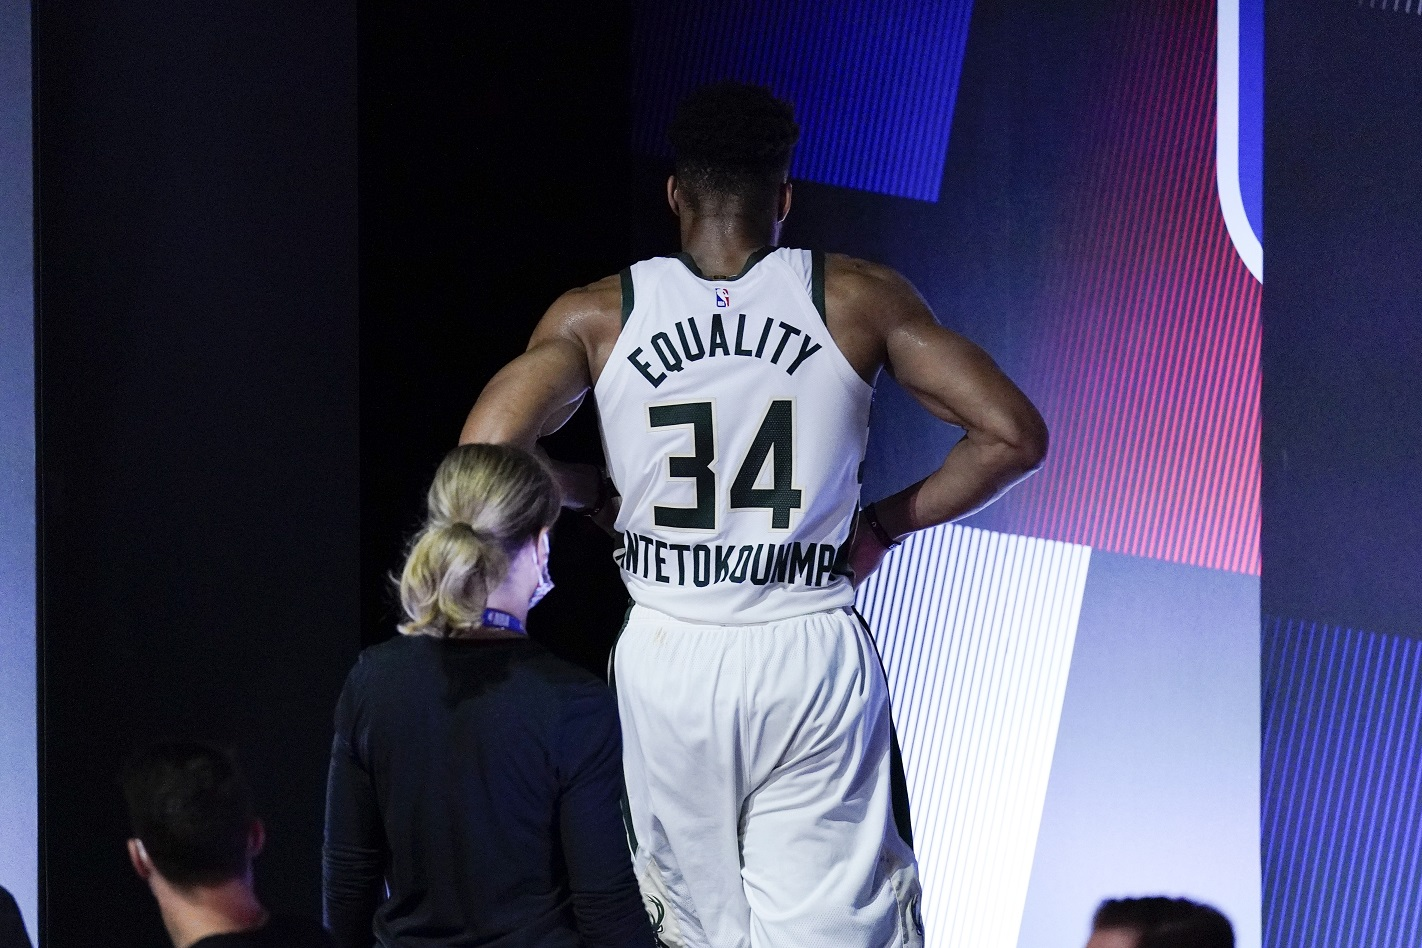 Should the Bucks even risk playing Antetokounmpo?